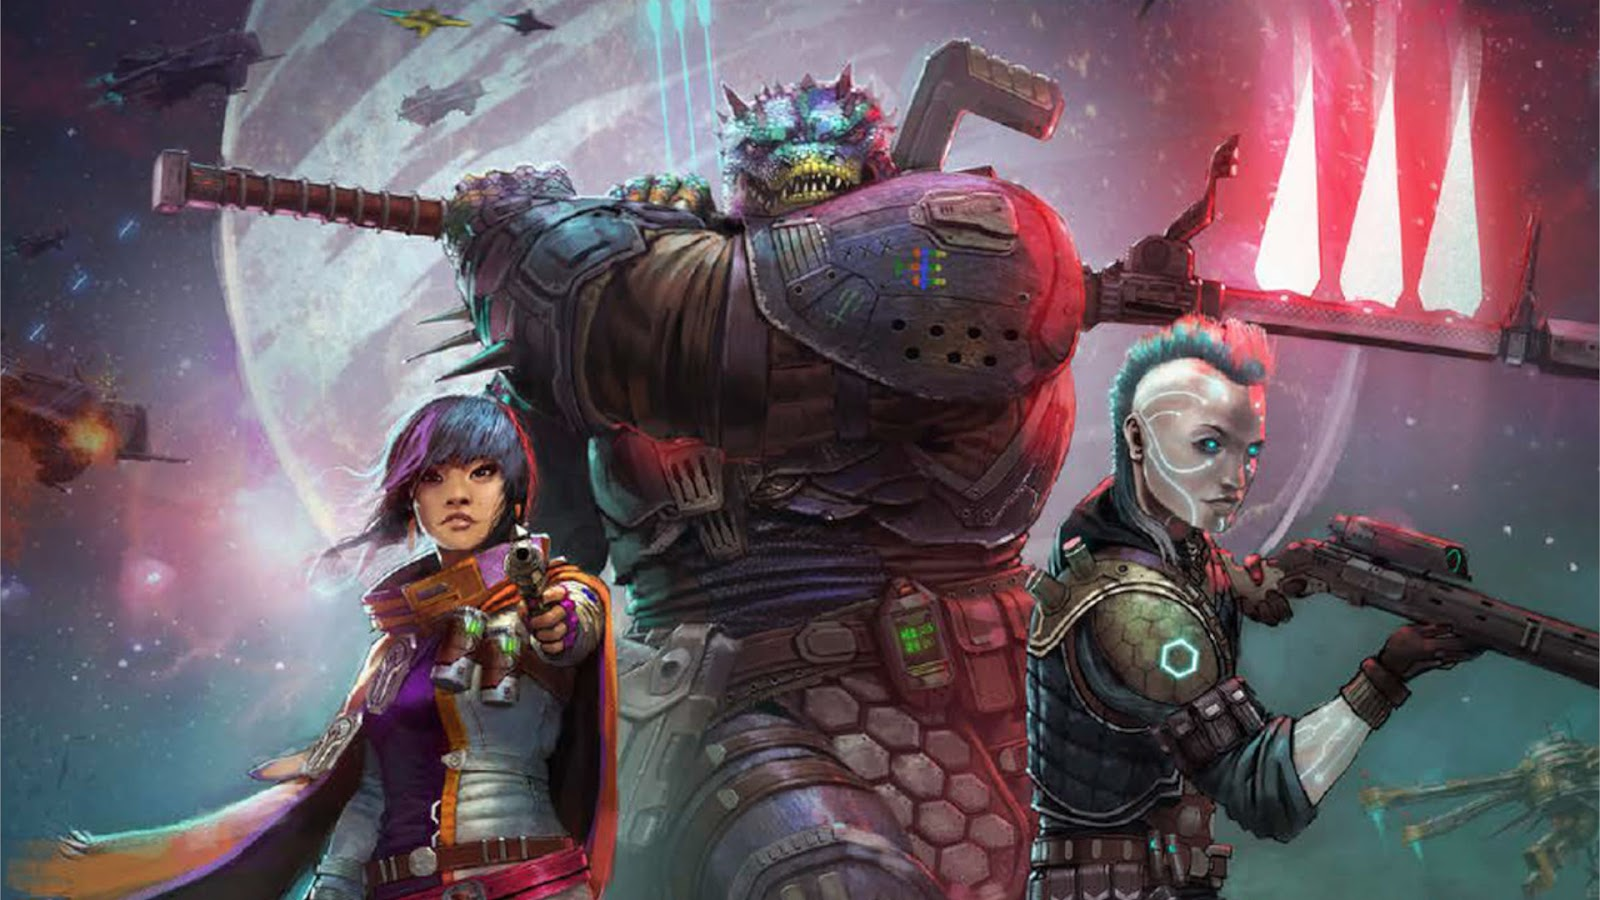 Board Game News Collider - Starfinder RPG with Amazon Alexa Skills